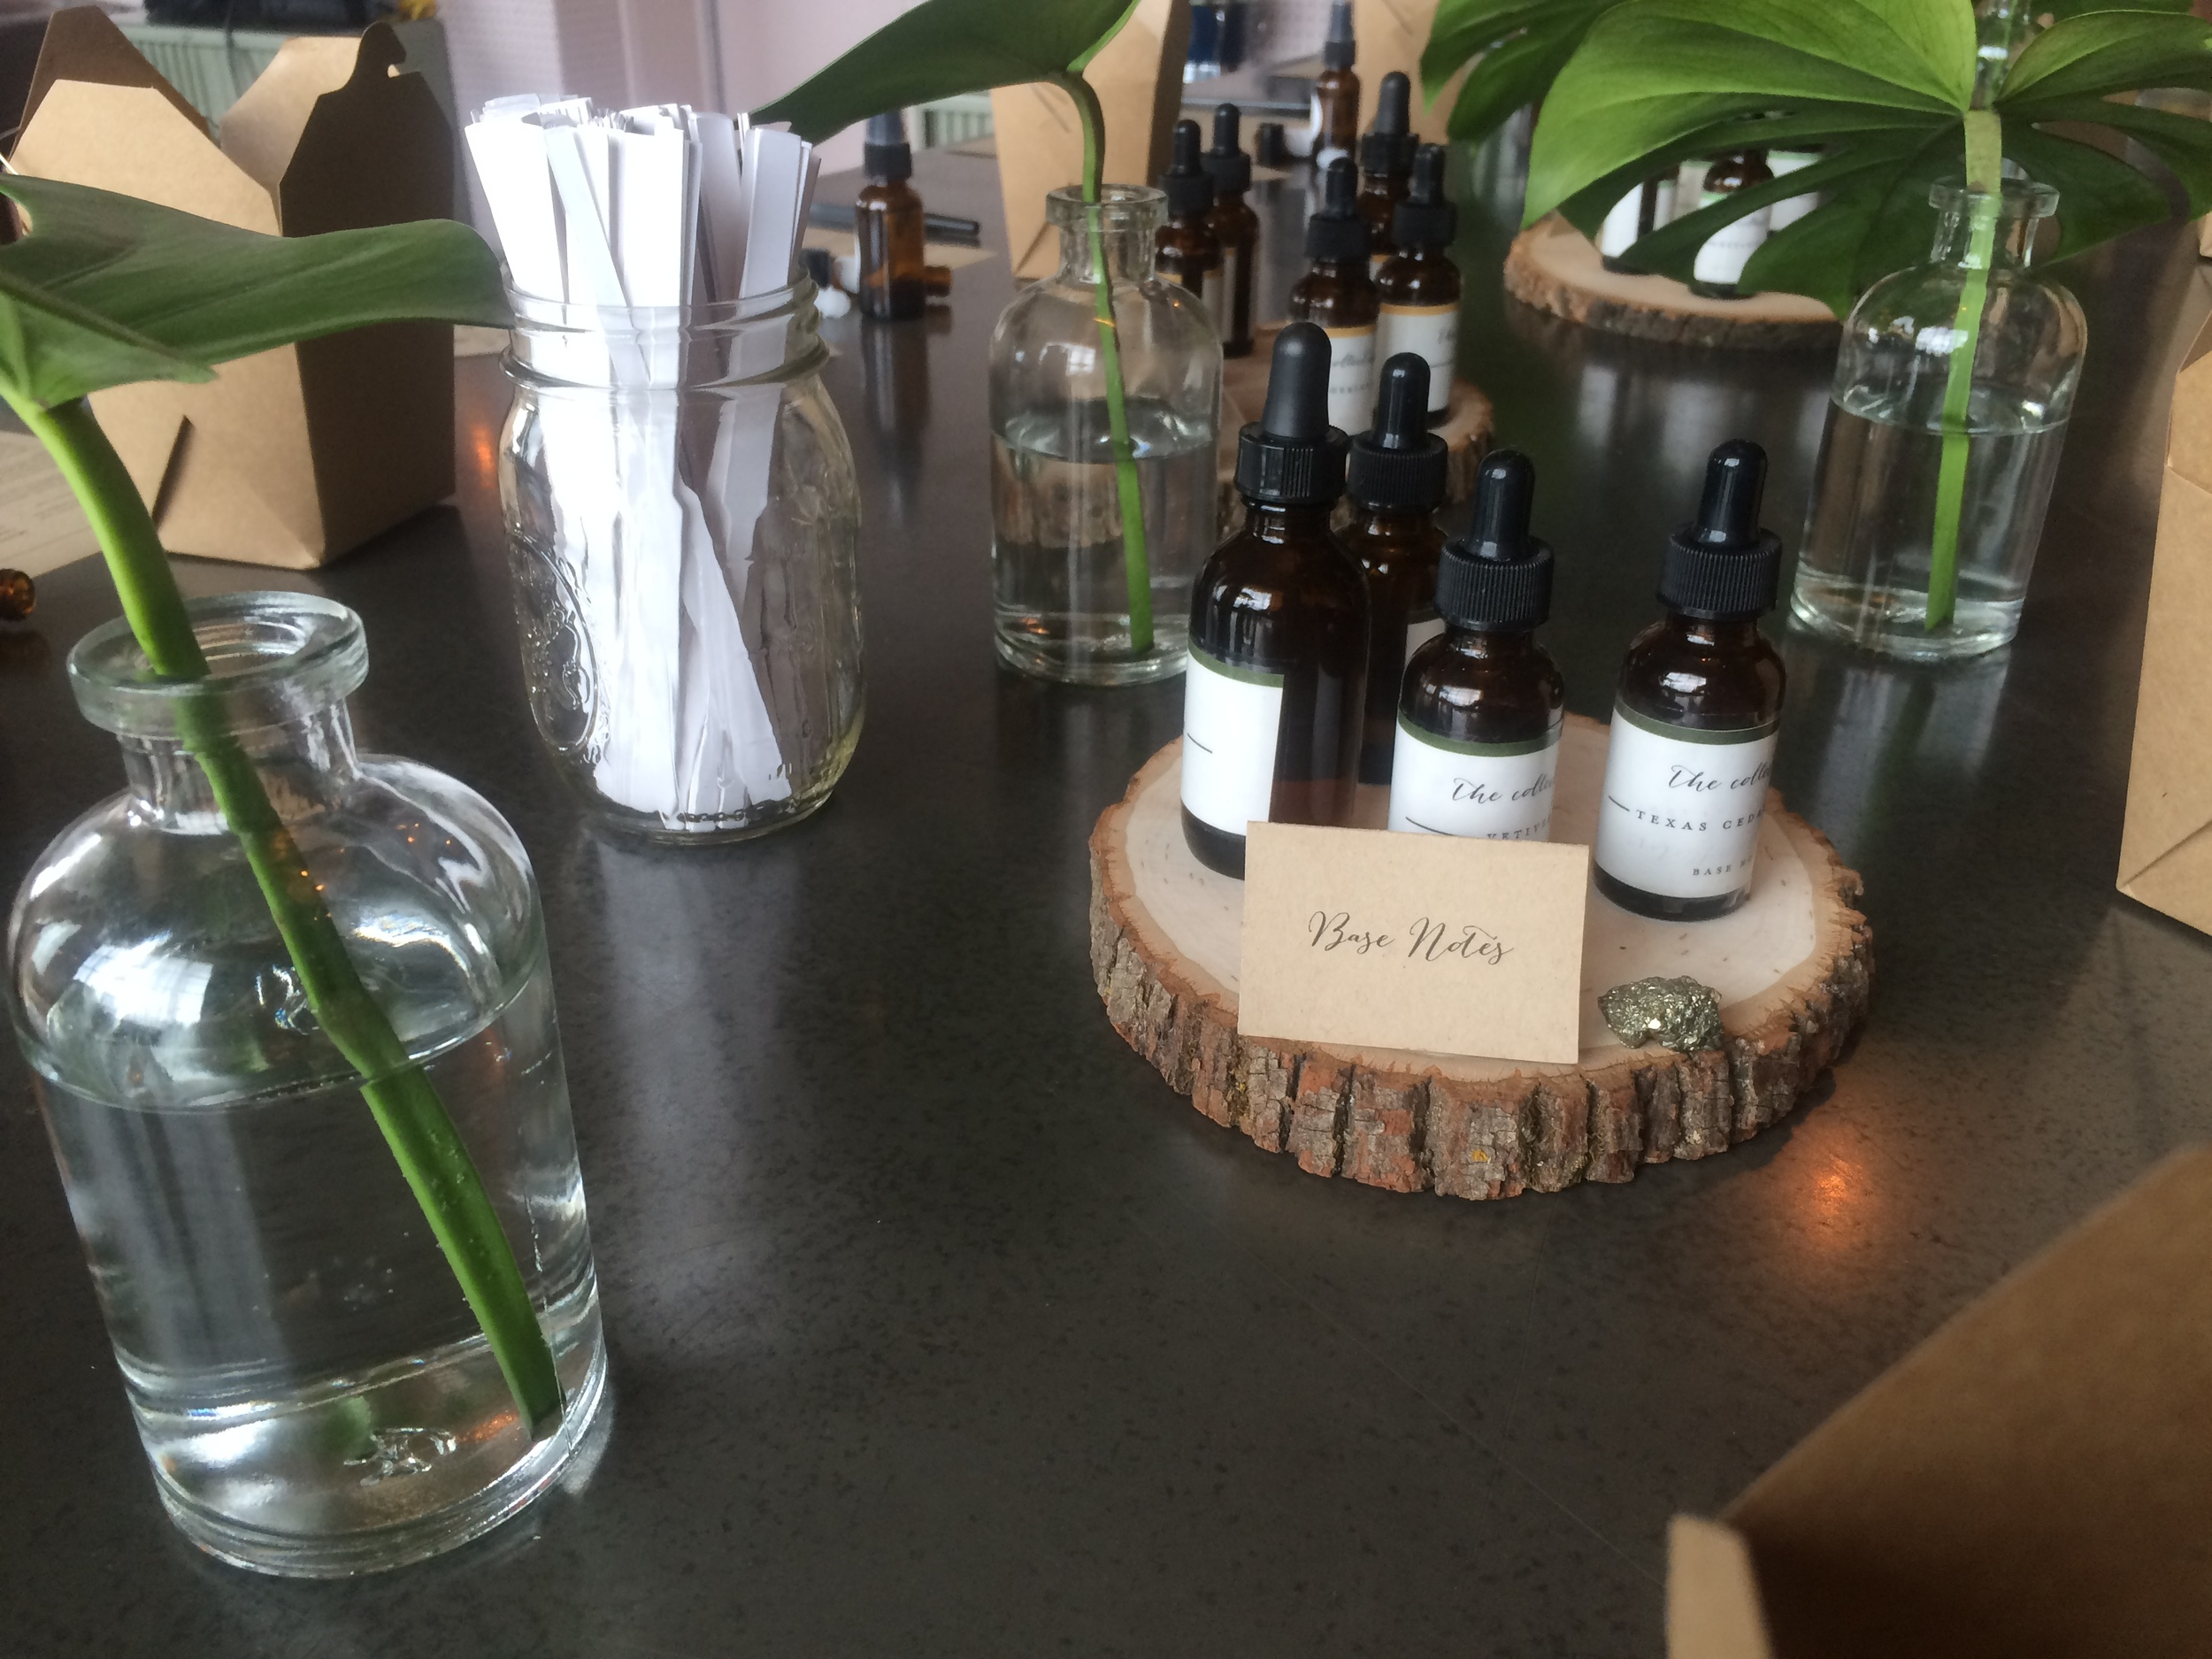 yoga-plus-the-collective-chicago-essential-oil-custom-fragrance-blending-workshop-soho-house-chicago_5051.JPG